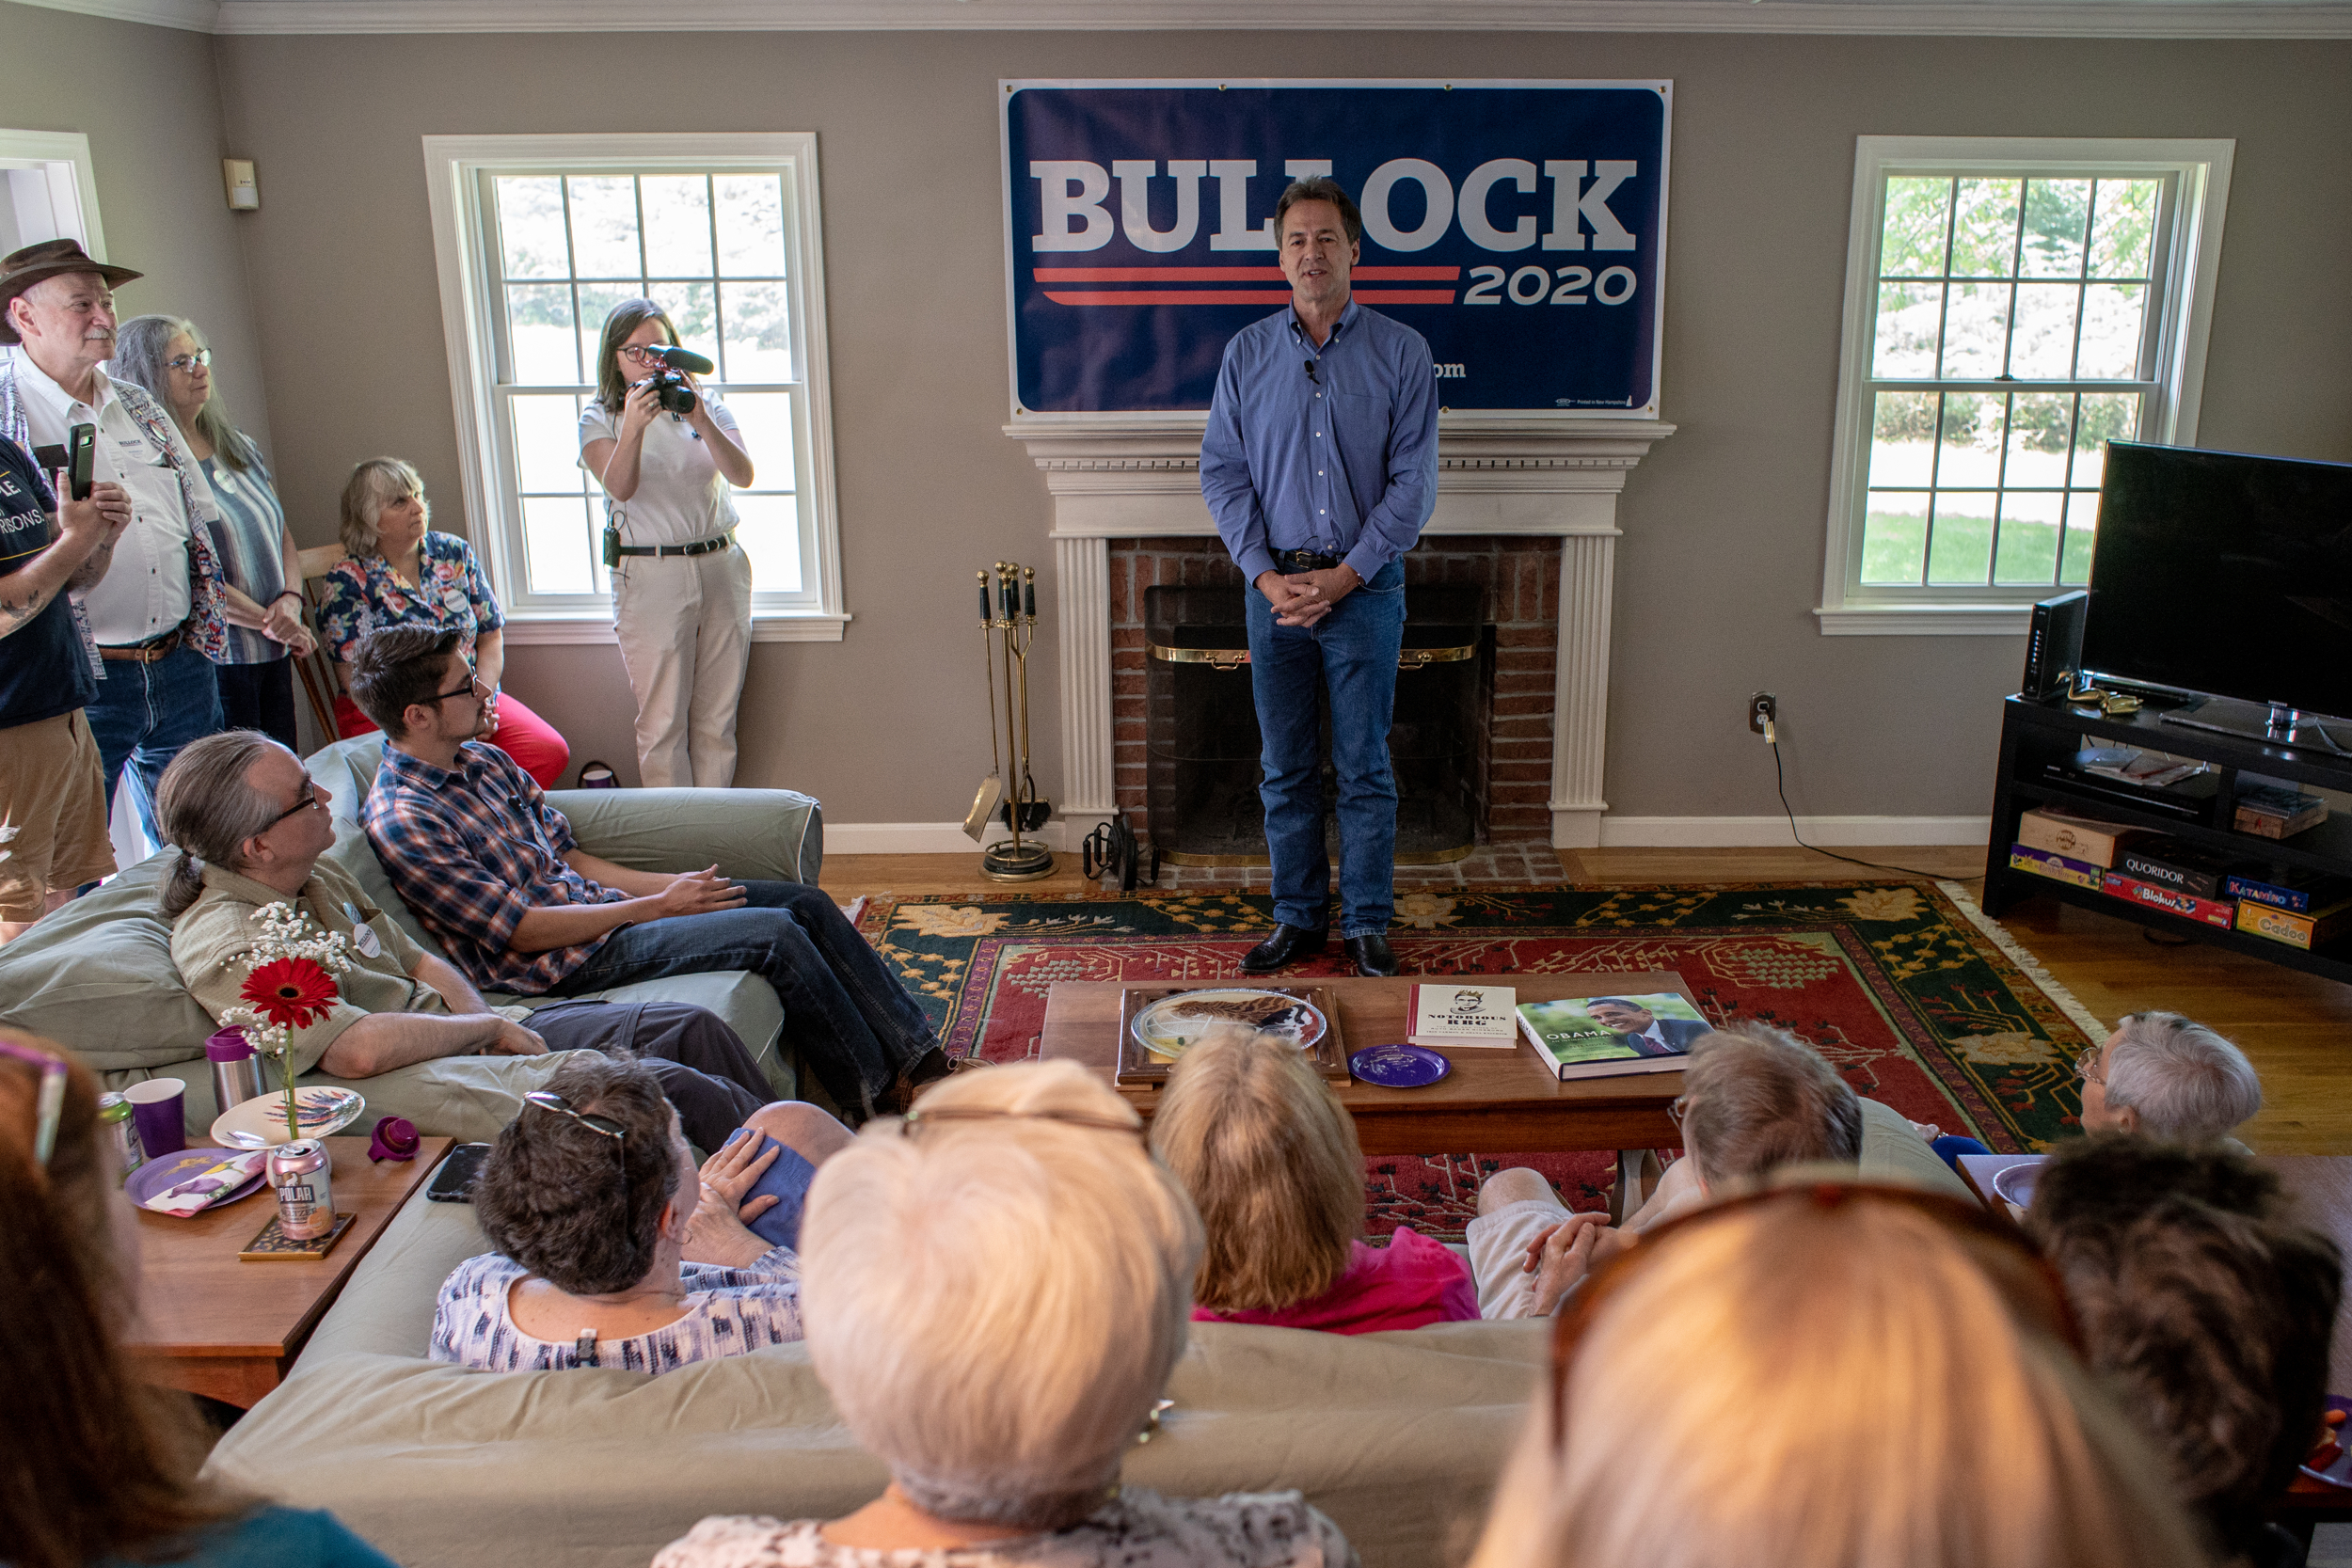 Gov. Steve Bullock of Montana speaks at a house party in Nashua, New Hampshire hosted by Joe Foster and Marissa Baltus on Saturday, June 22, 2019. The stop was one of several over two days during Bullock's first visit to the state as a presidential candidate. 